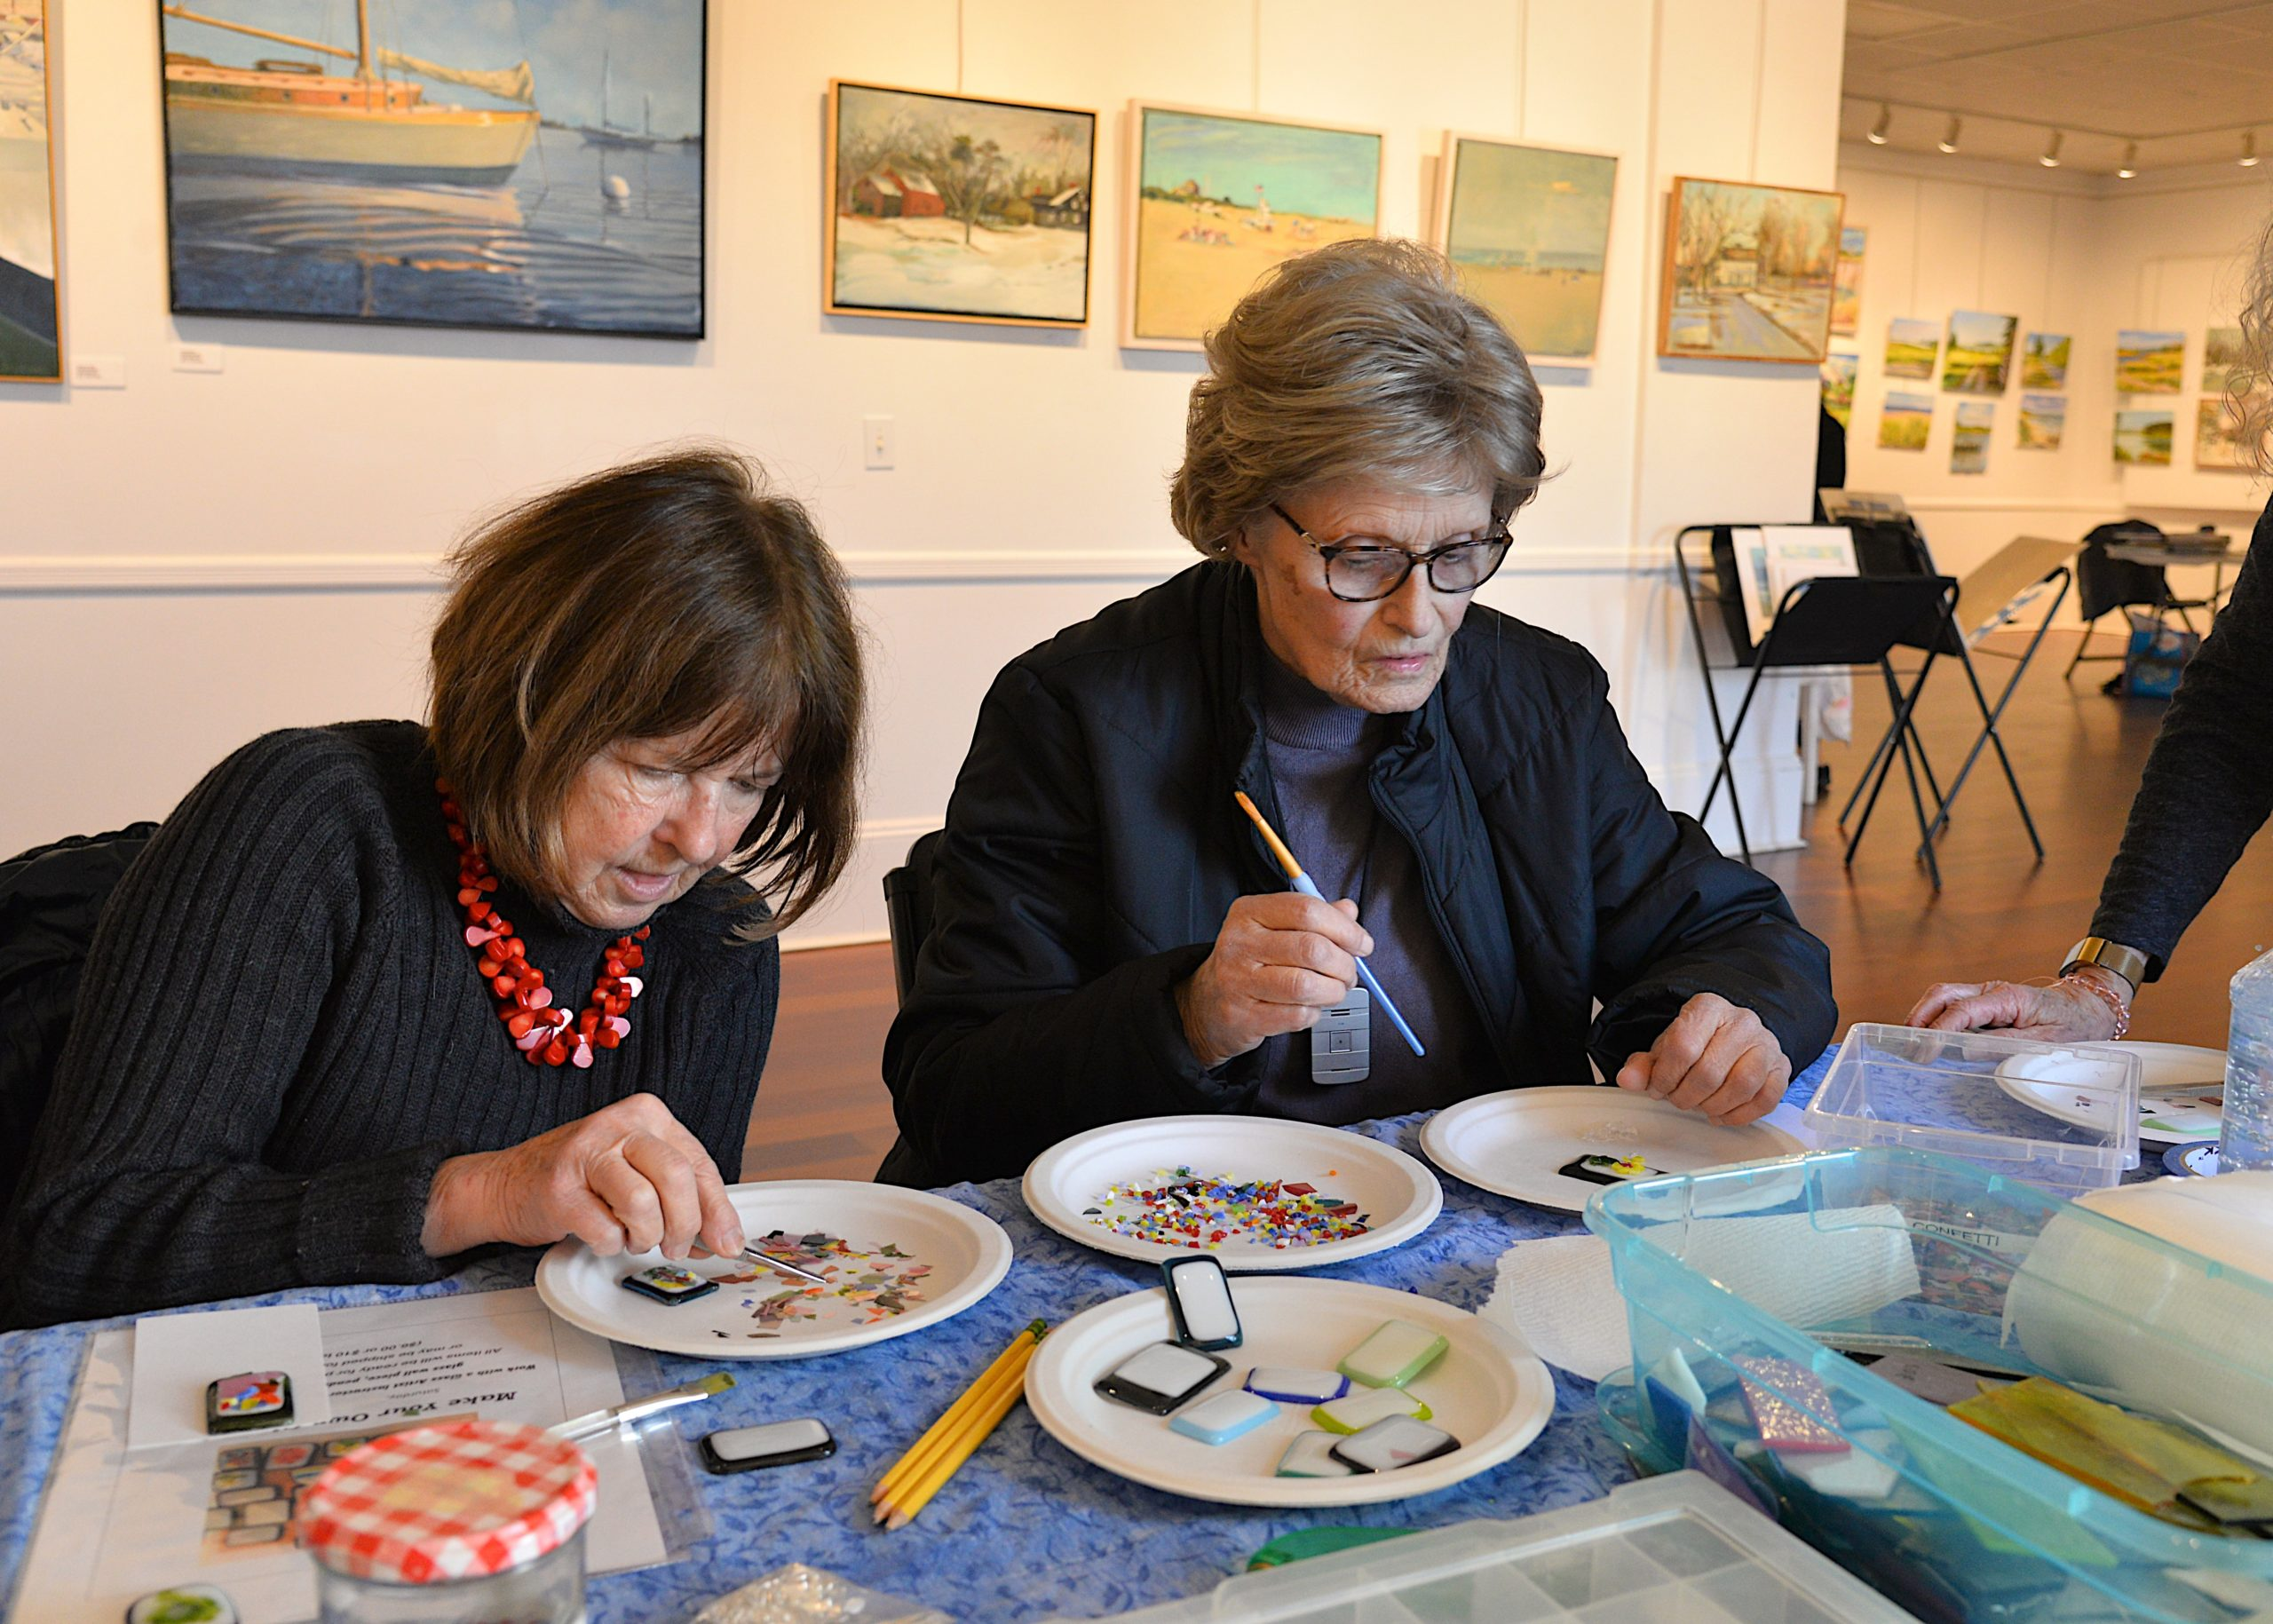 The Artists Alliance of East Hampton held an art exhibit at Ashawagh Hall this weekend, featuring then work of the Wednesday Group, Plein-Air artists using local scenery for inspiration There were also workshops in painting and glass fusion. Ursula Thomas and Annie Loris try their hand at learning glass fusing techniques. KYRIL BROMLEY